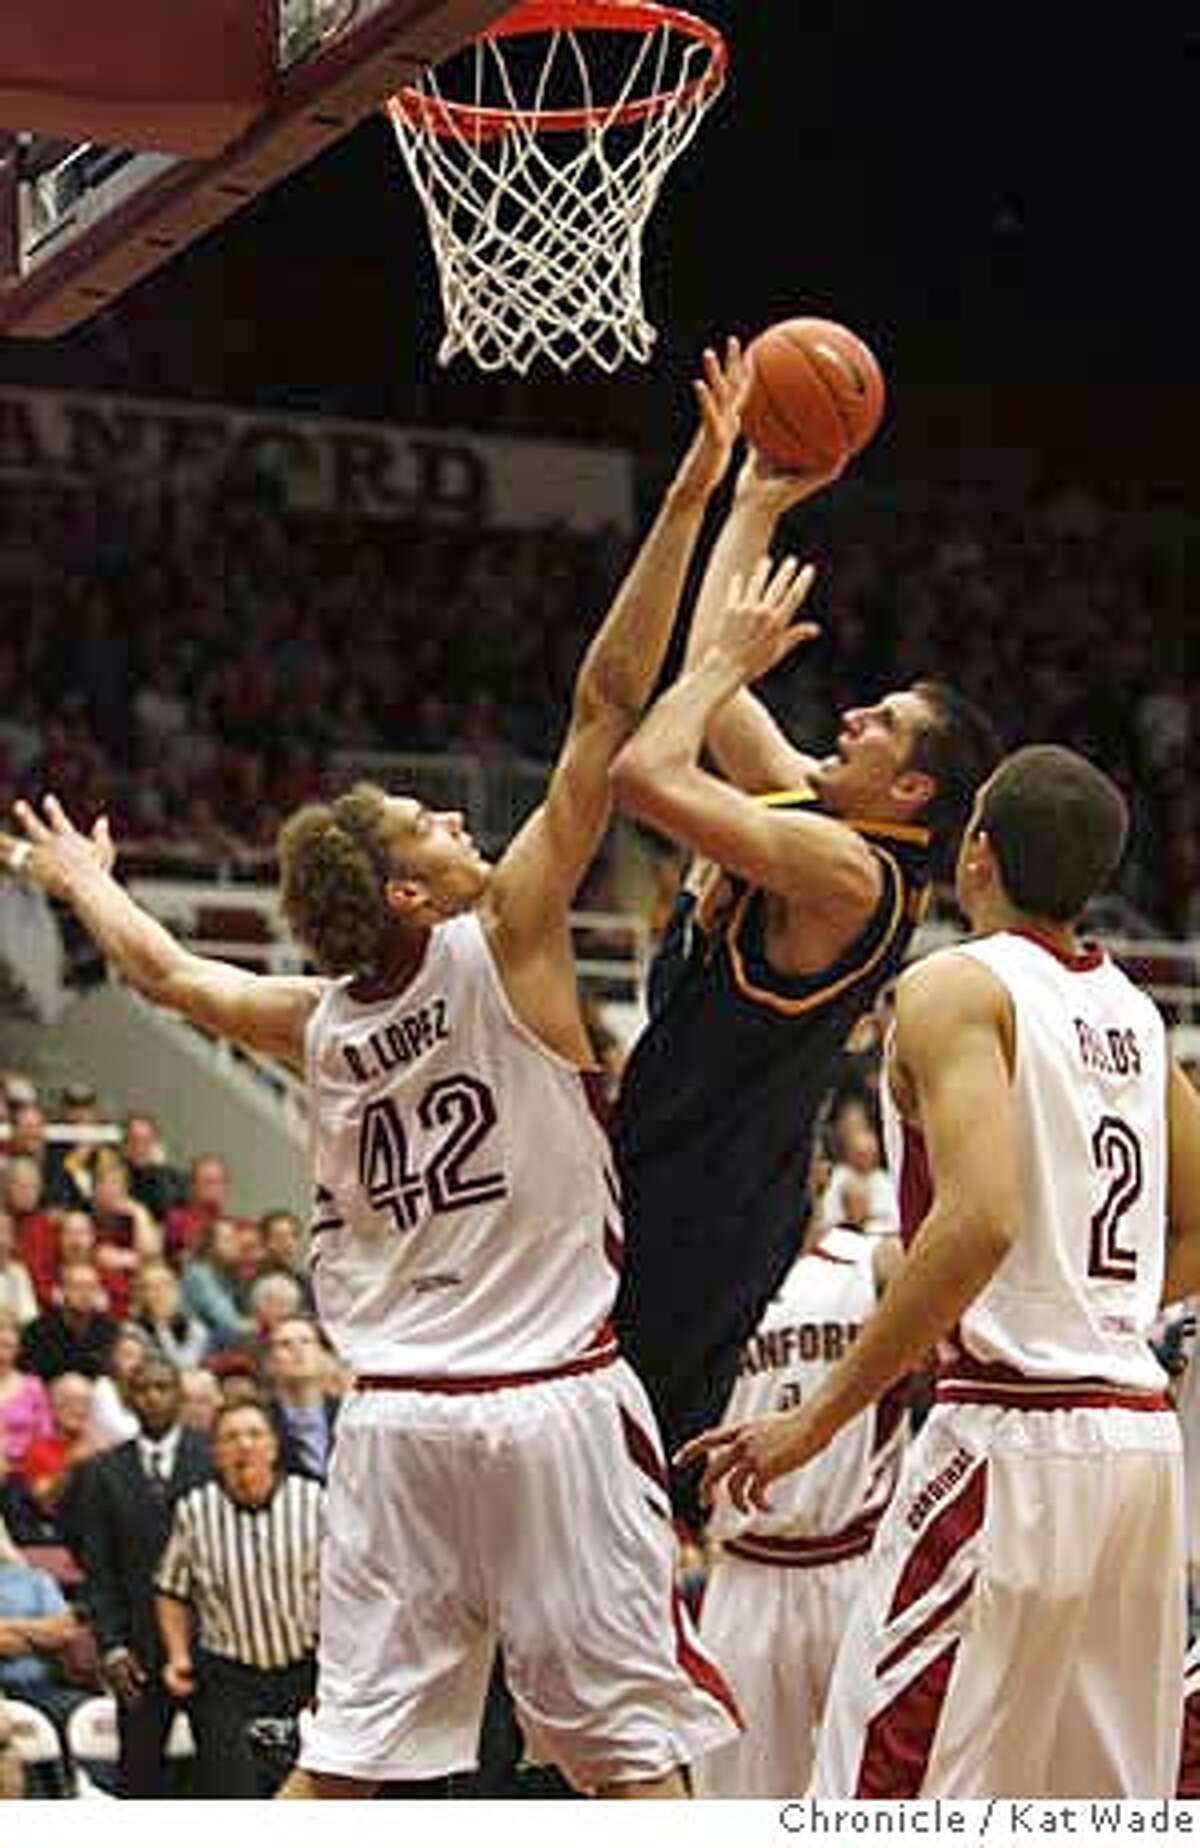 CAL_STANFORD_2_0640_KW_.jpg Cal State Golden Bear's Ryan Anderson shoots over Stanford's Robin Lopez (left) and Landry Fields during the second period of the win against the Stanford during the Pac 10 Conference Game at Stanford University in the Maples Pavilion in Palo Alto on January 3, 2007. Alex Pribble (right) #31 seems happy with the win Kat Wade/The Chronicle Mandatory Credit for San Francisco Chronicle and photographer, Kat Wade, Mags out